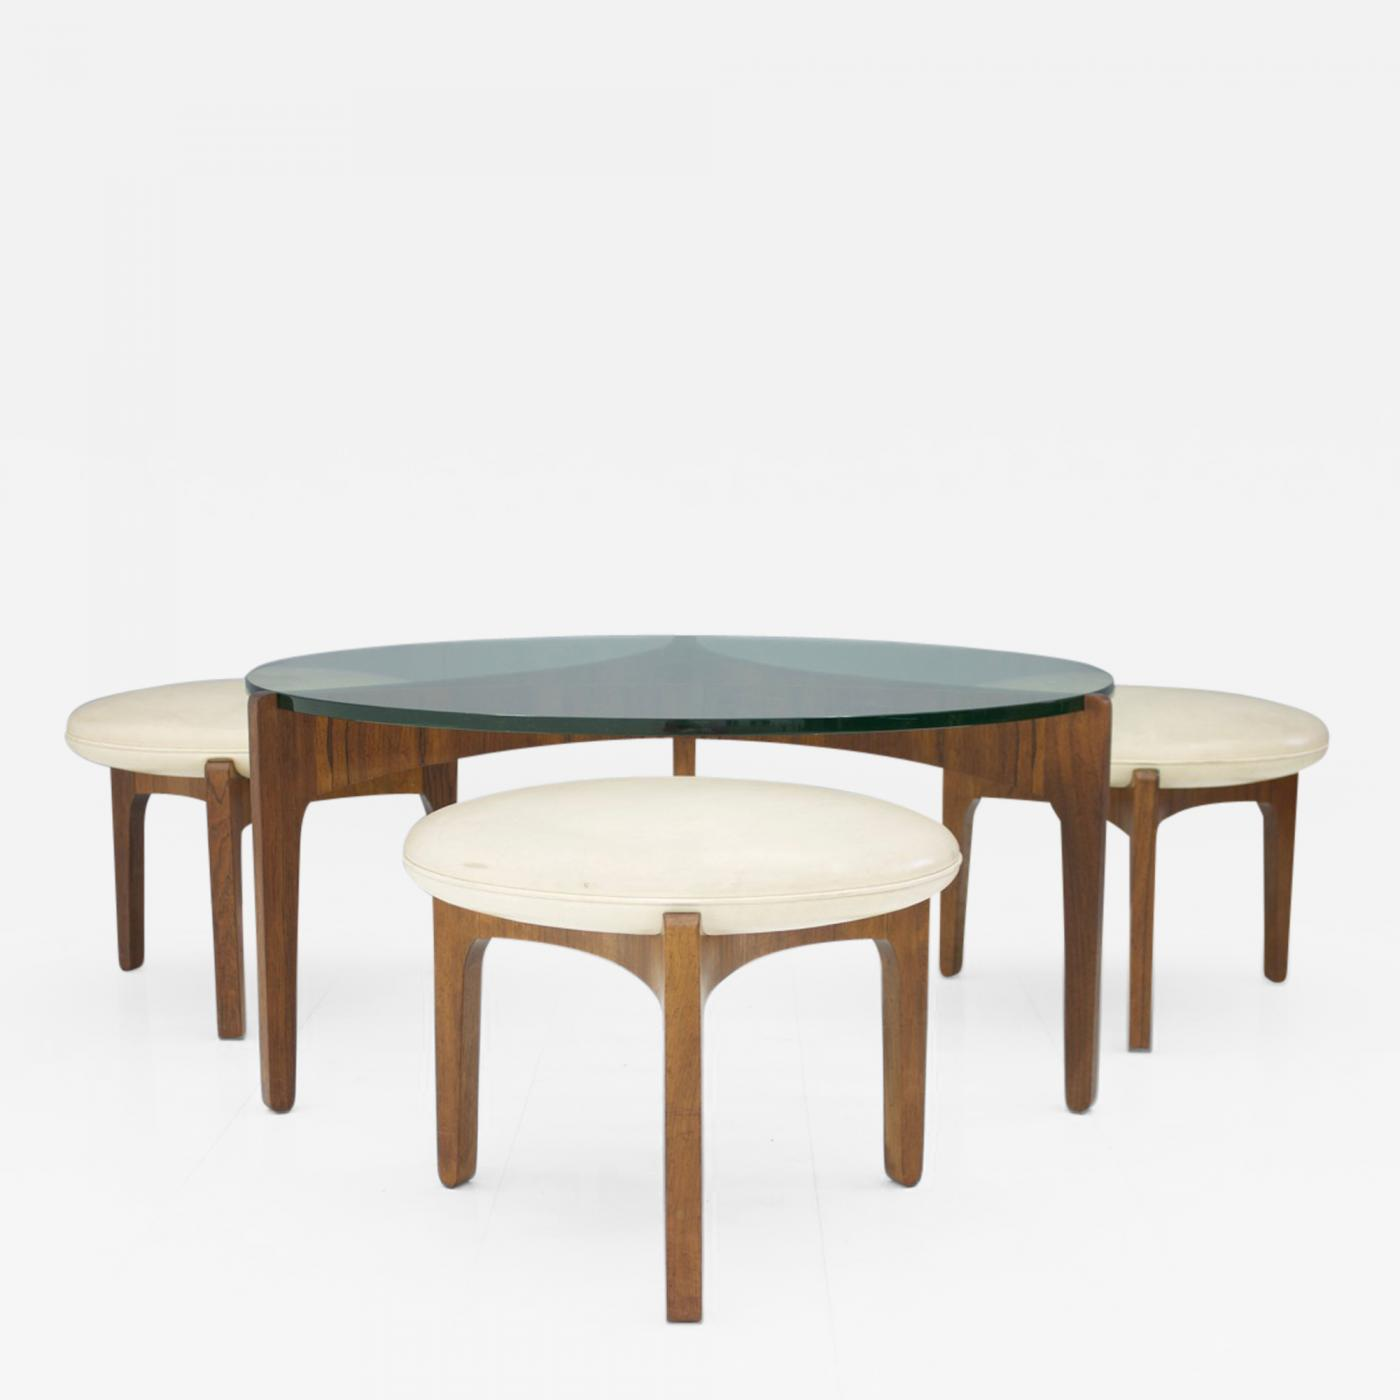 Coffee Table With Stools.Sven Ellekaer Sven Ellekaer Three Leg Coffee Table And Three Stools Christian Linneberg